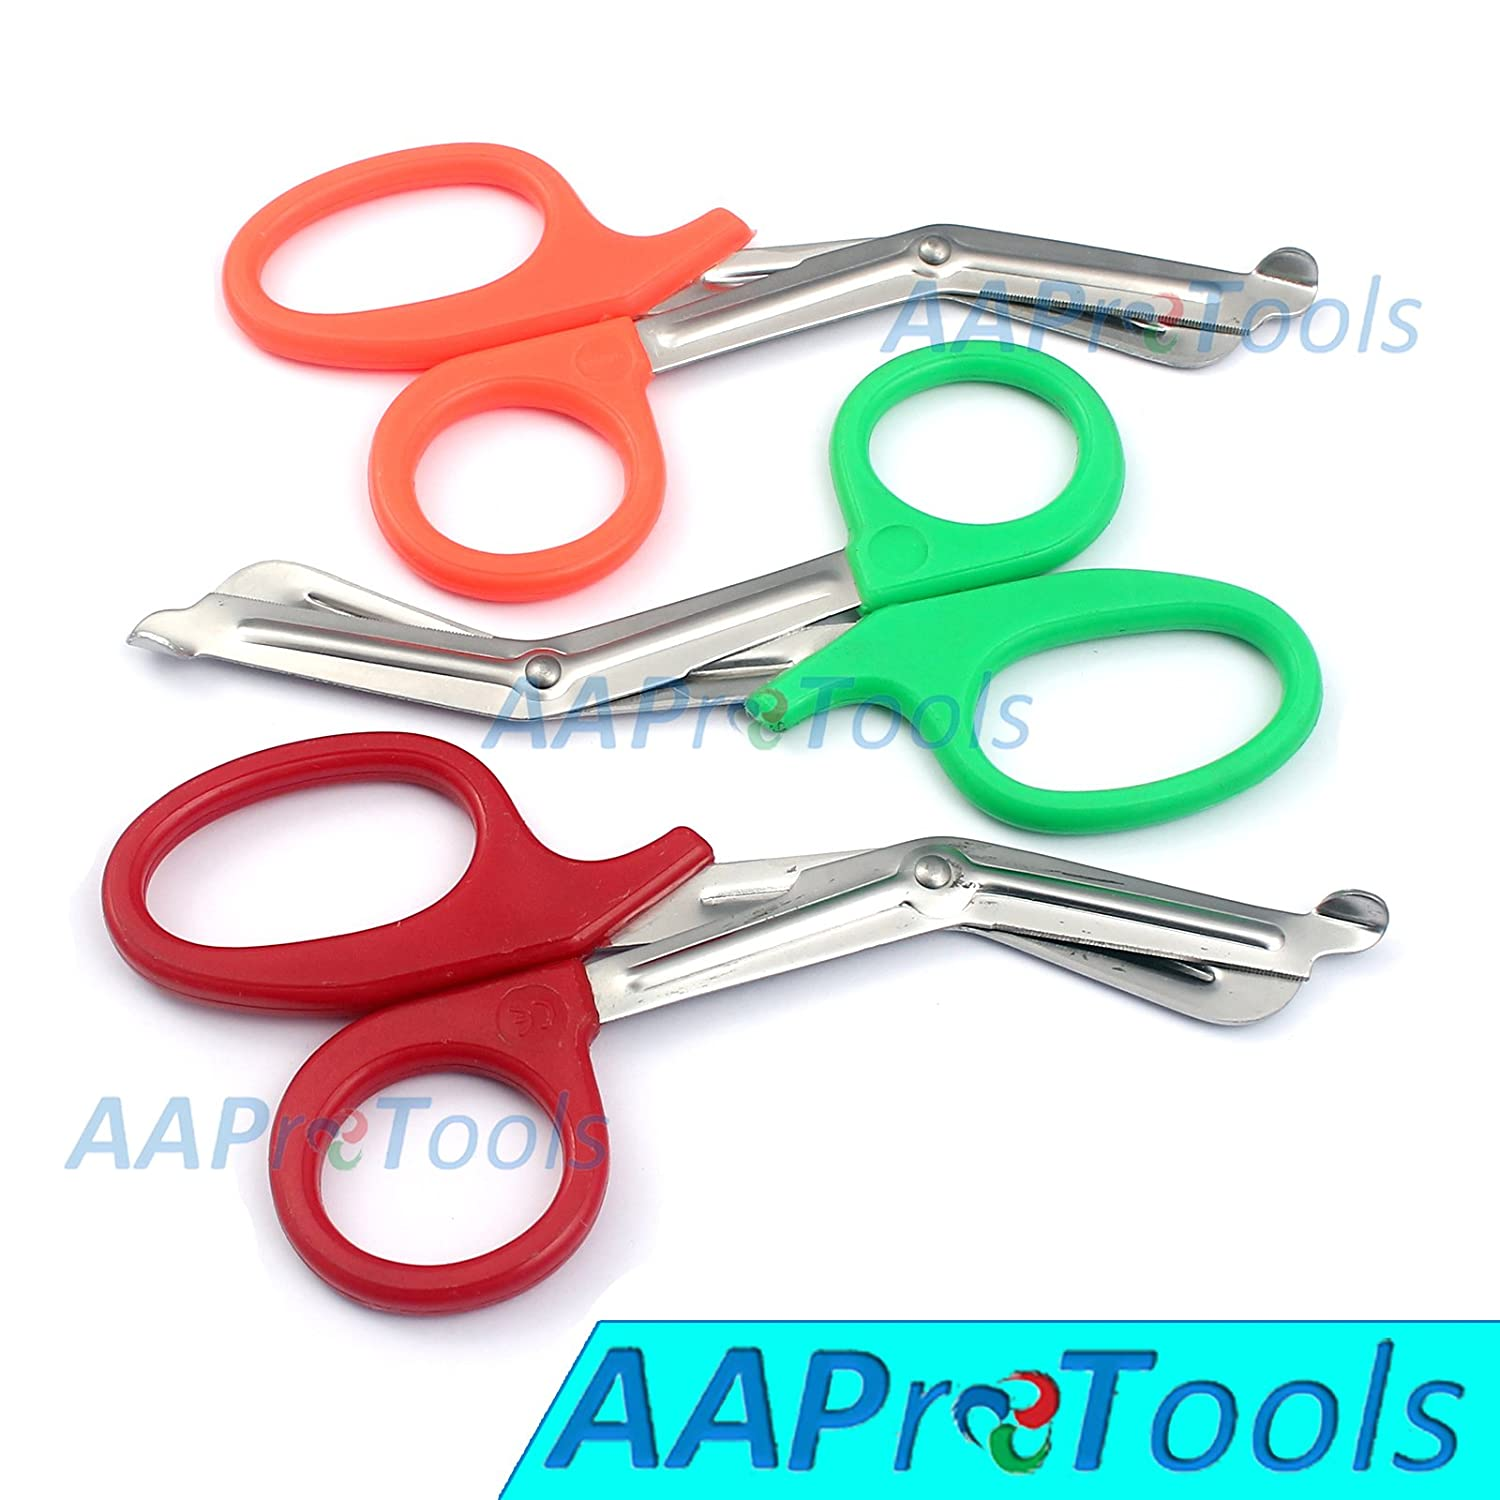 "AAPROTOOLS SET OF 3 ( ORANGE GREEN RED ) TRAUMA PARAMEDIC EMT SHEARS SCISSORS 7.5"" A+ QUALITY"